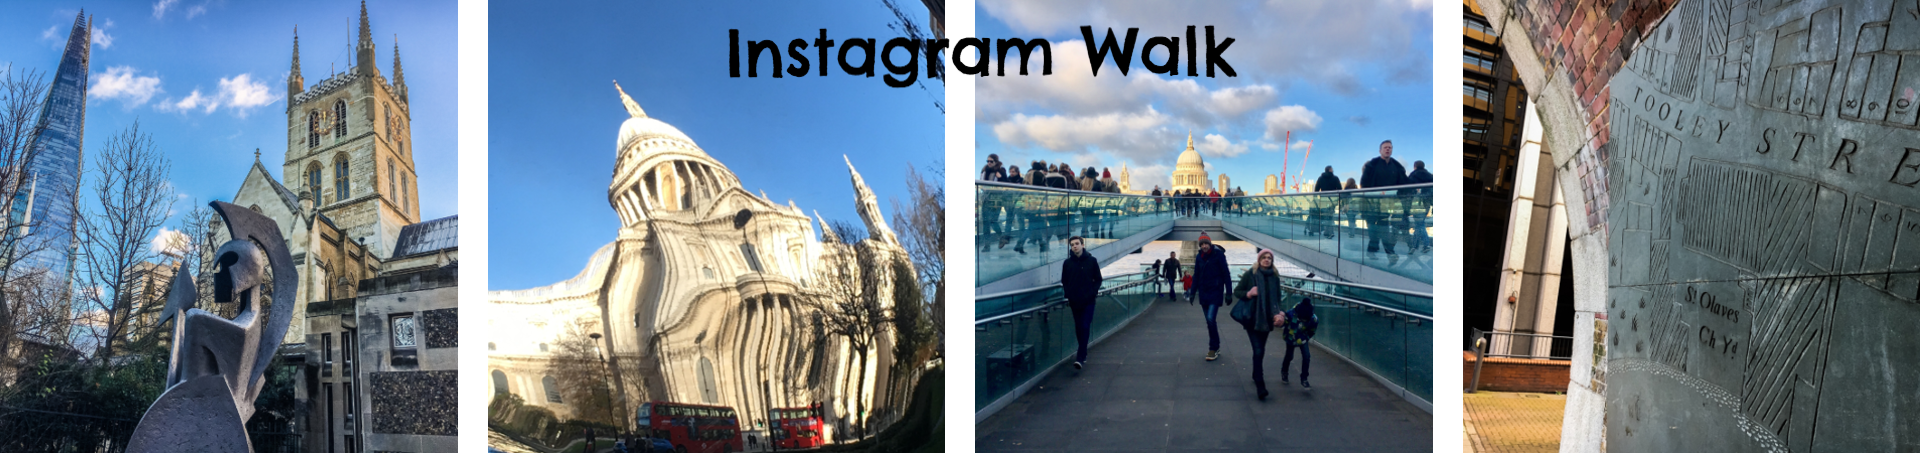 Instagram London Walk